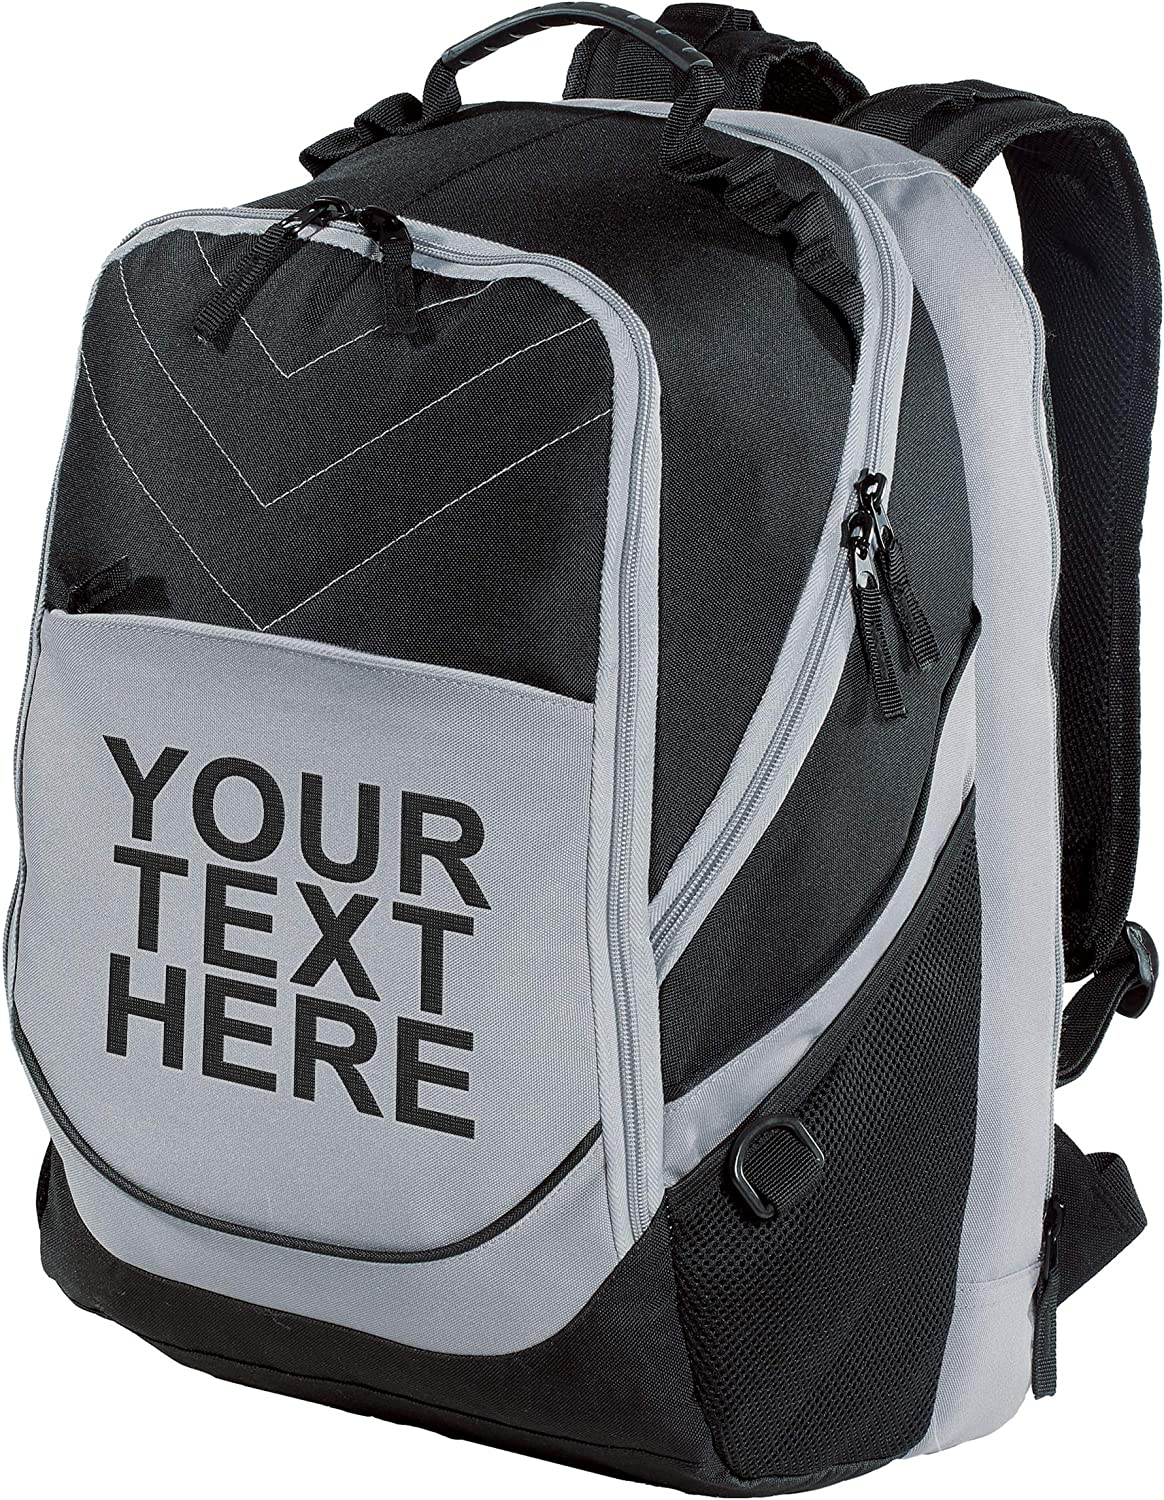 "Personalized Custom Business Computer Backpack - Add Your Name (17"" Laptops)"